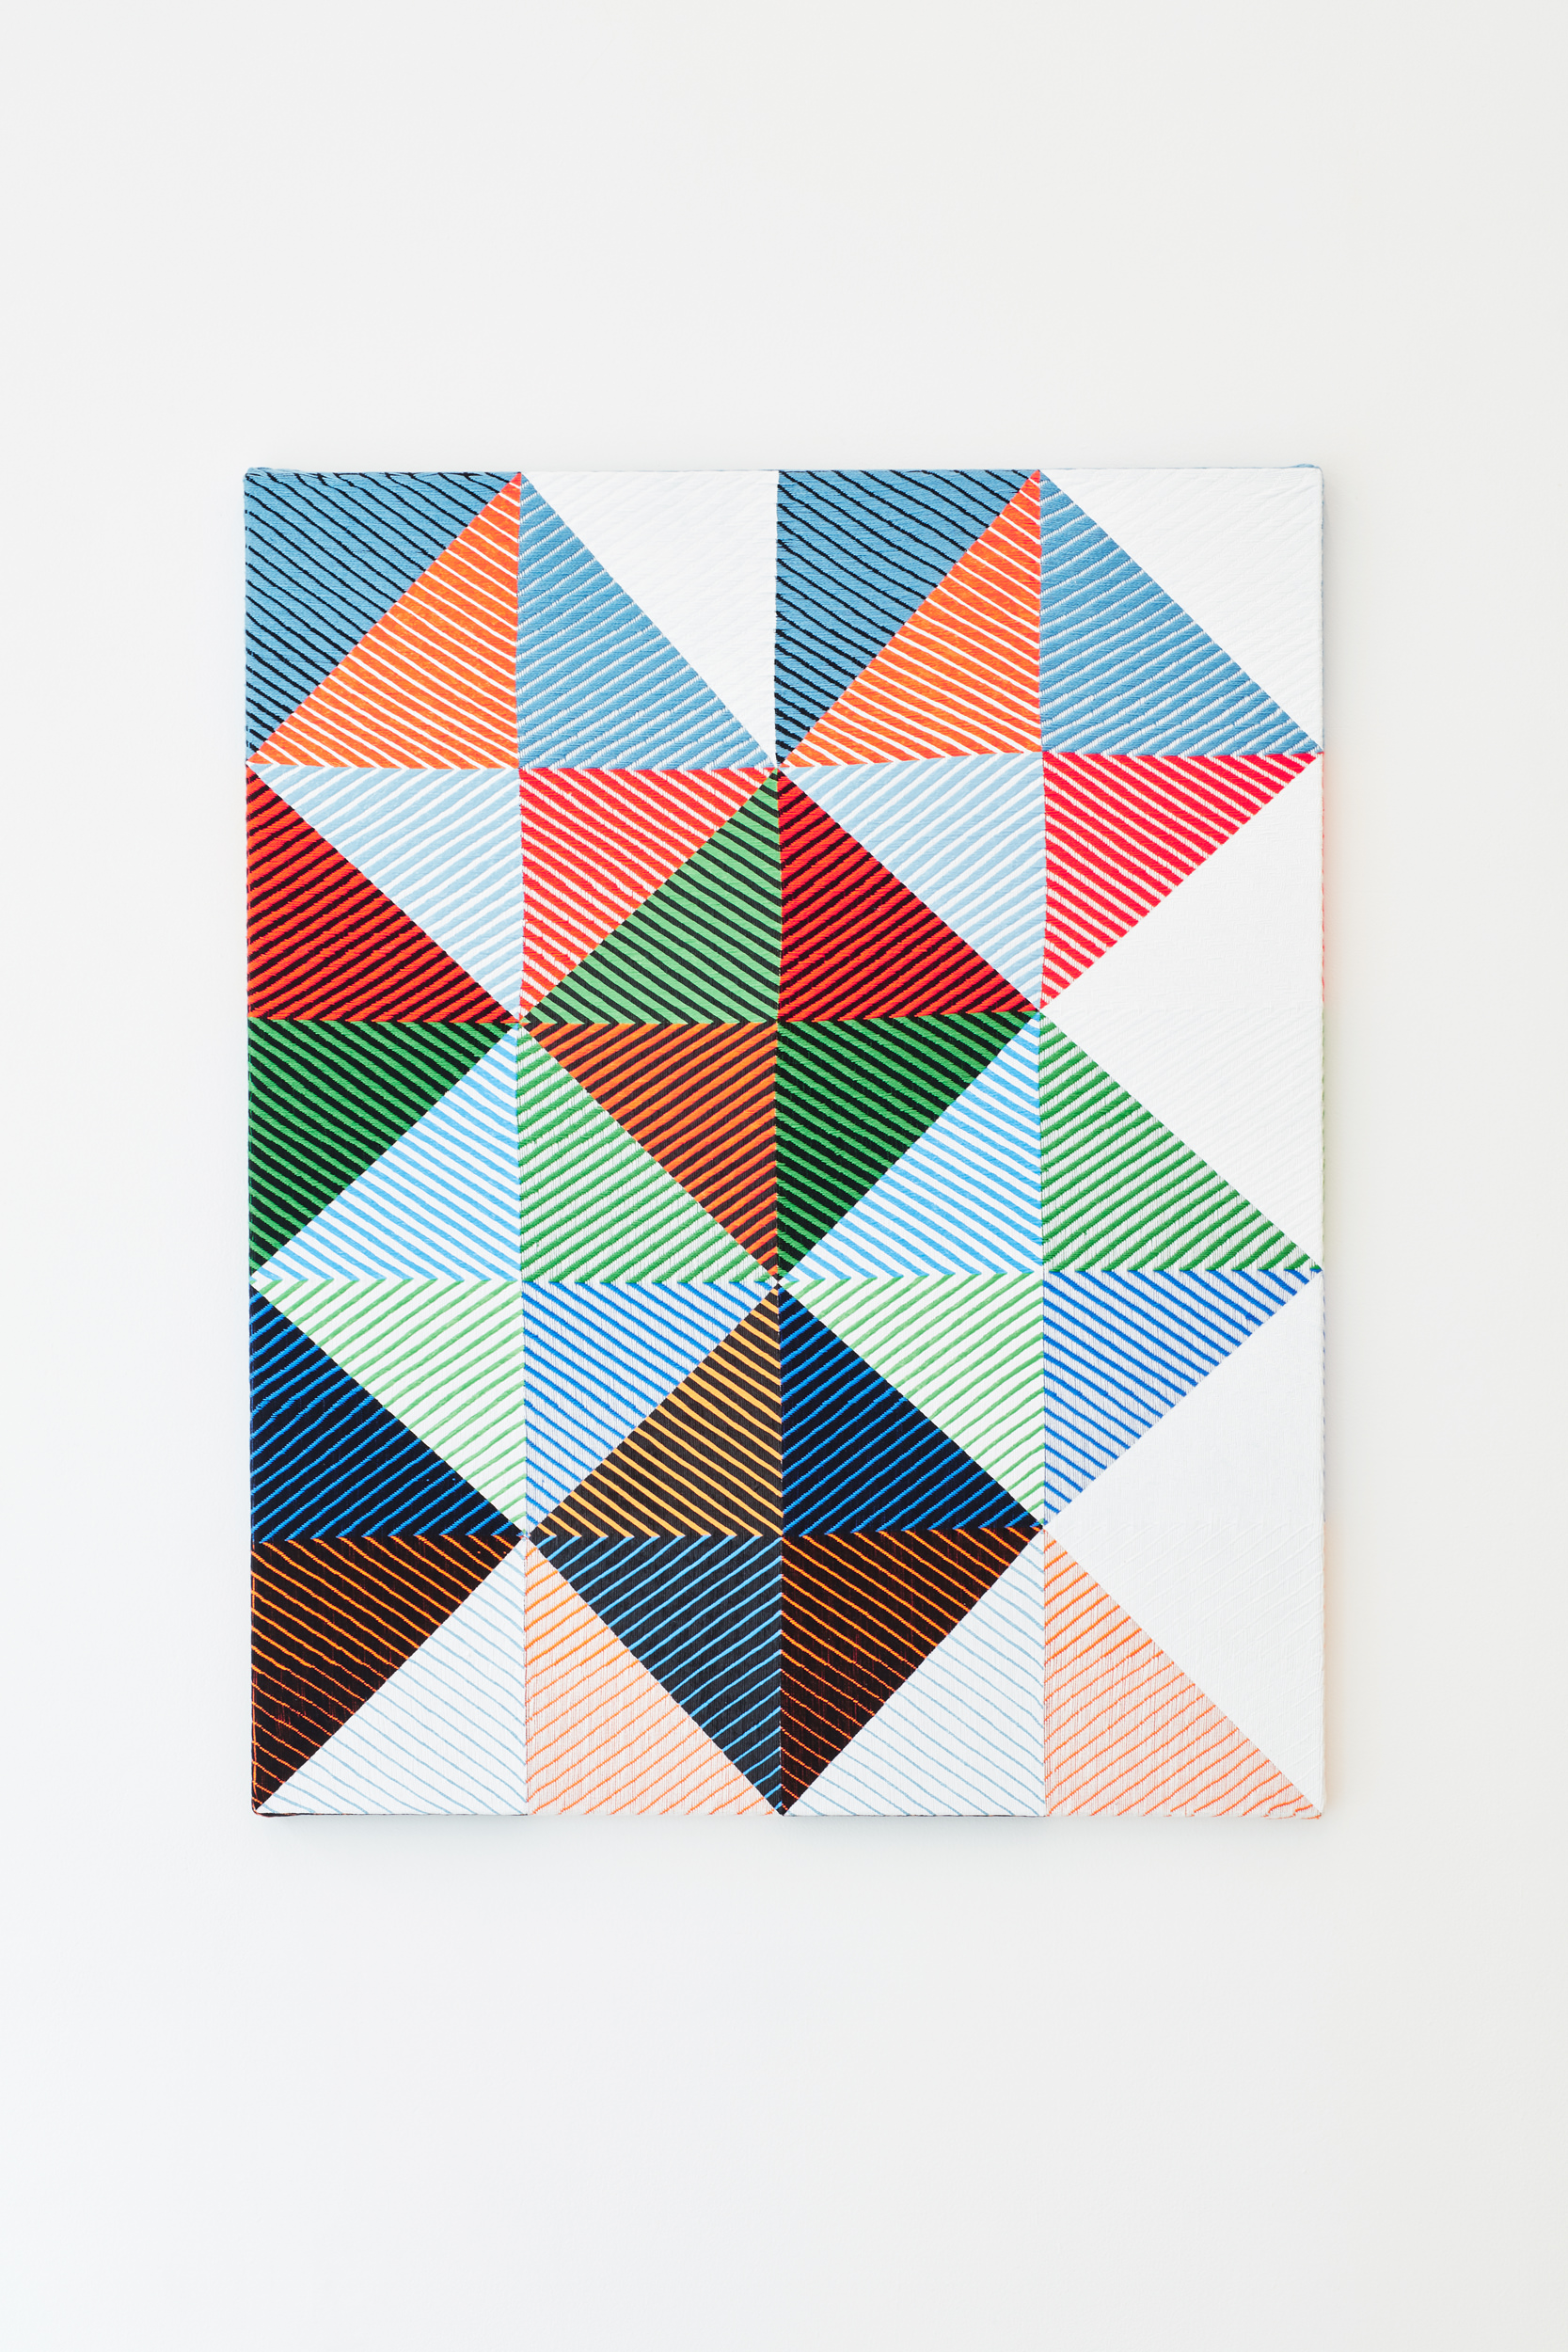 Samantha Bittman, Untitled, 2017, acrylic on hand-woven textile, 40×32 inc, inv. n. 2017-024